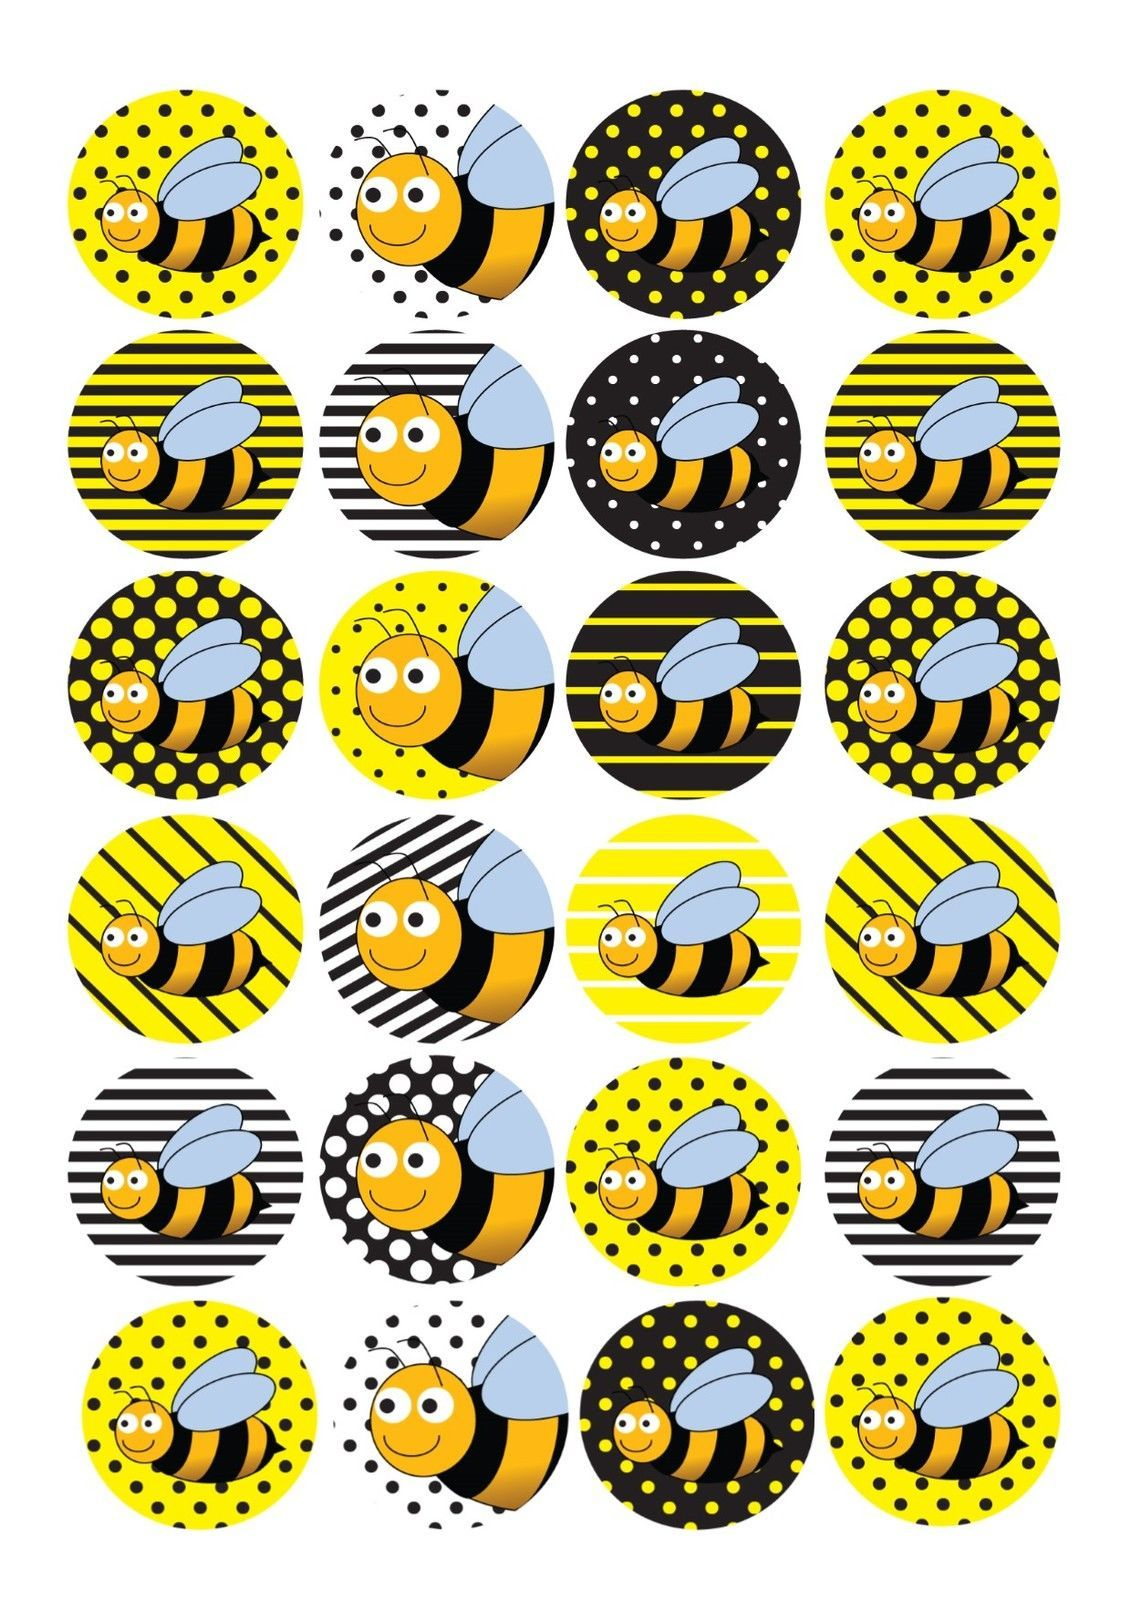 Details About 24 Edible Cake Toppers Decorations Bumblebee